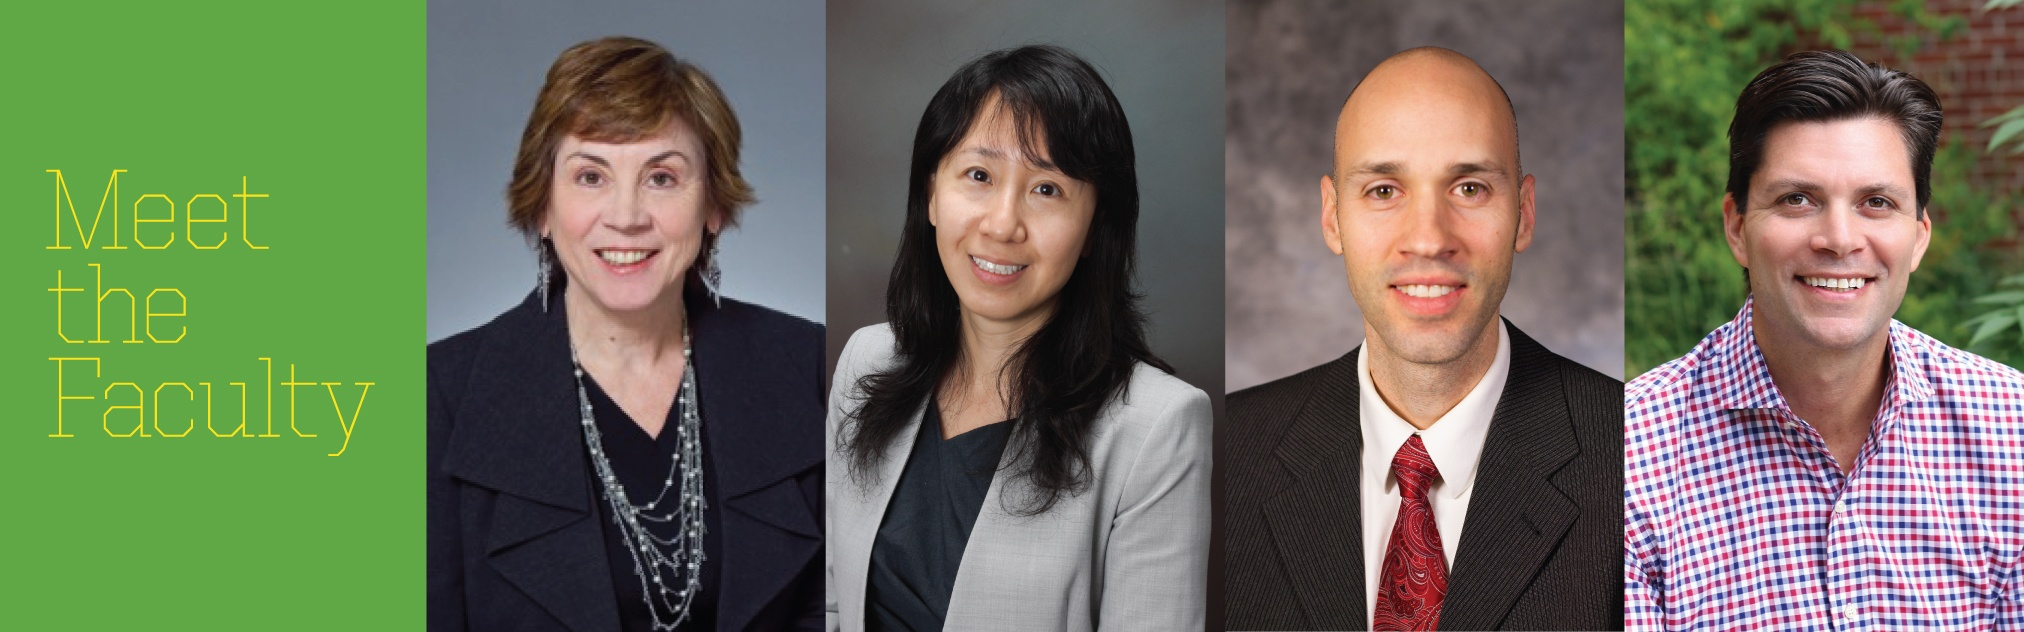 Image collage of four new Lundquist College faculty members